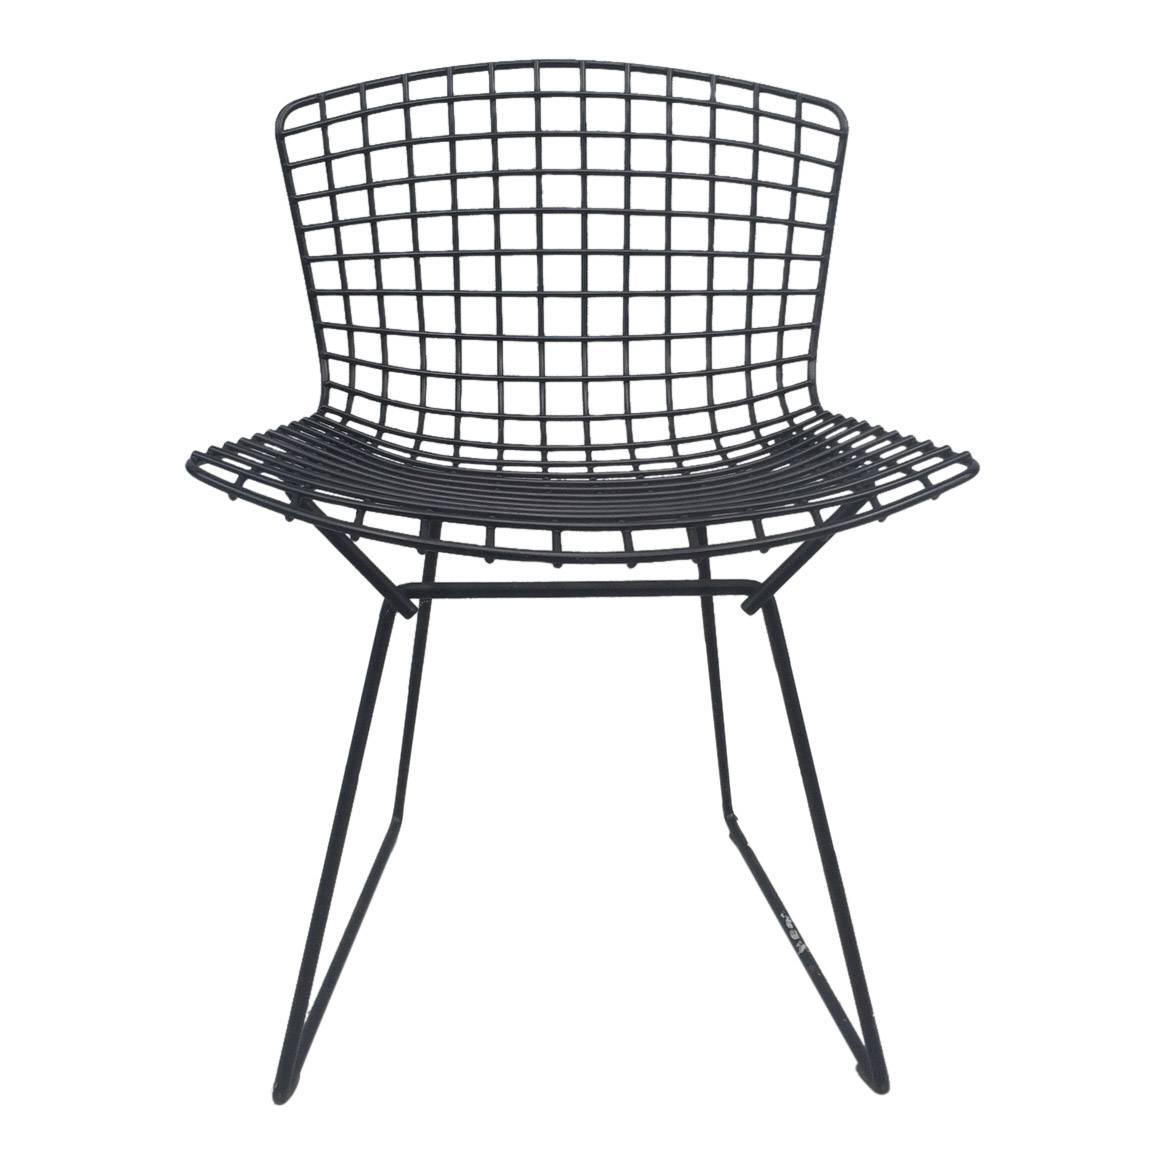 harry bertoia for knoll wire 1970s harry bertoia black wire stool for knoll at 1stdibs harry. Black Bedroom Furniture Sets. Home Design Ideas